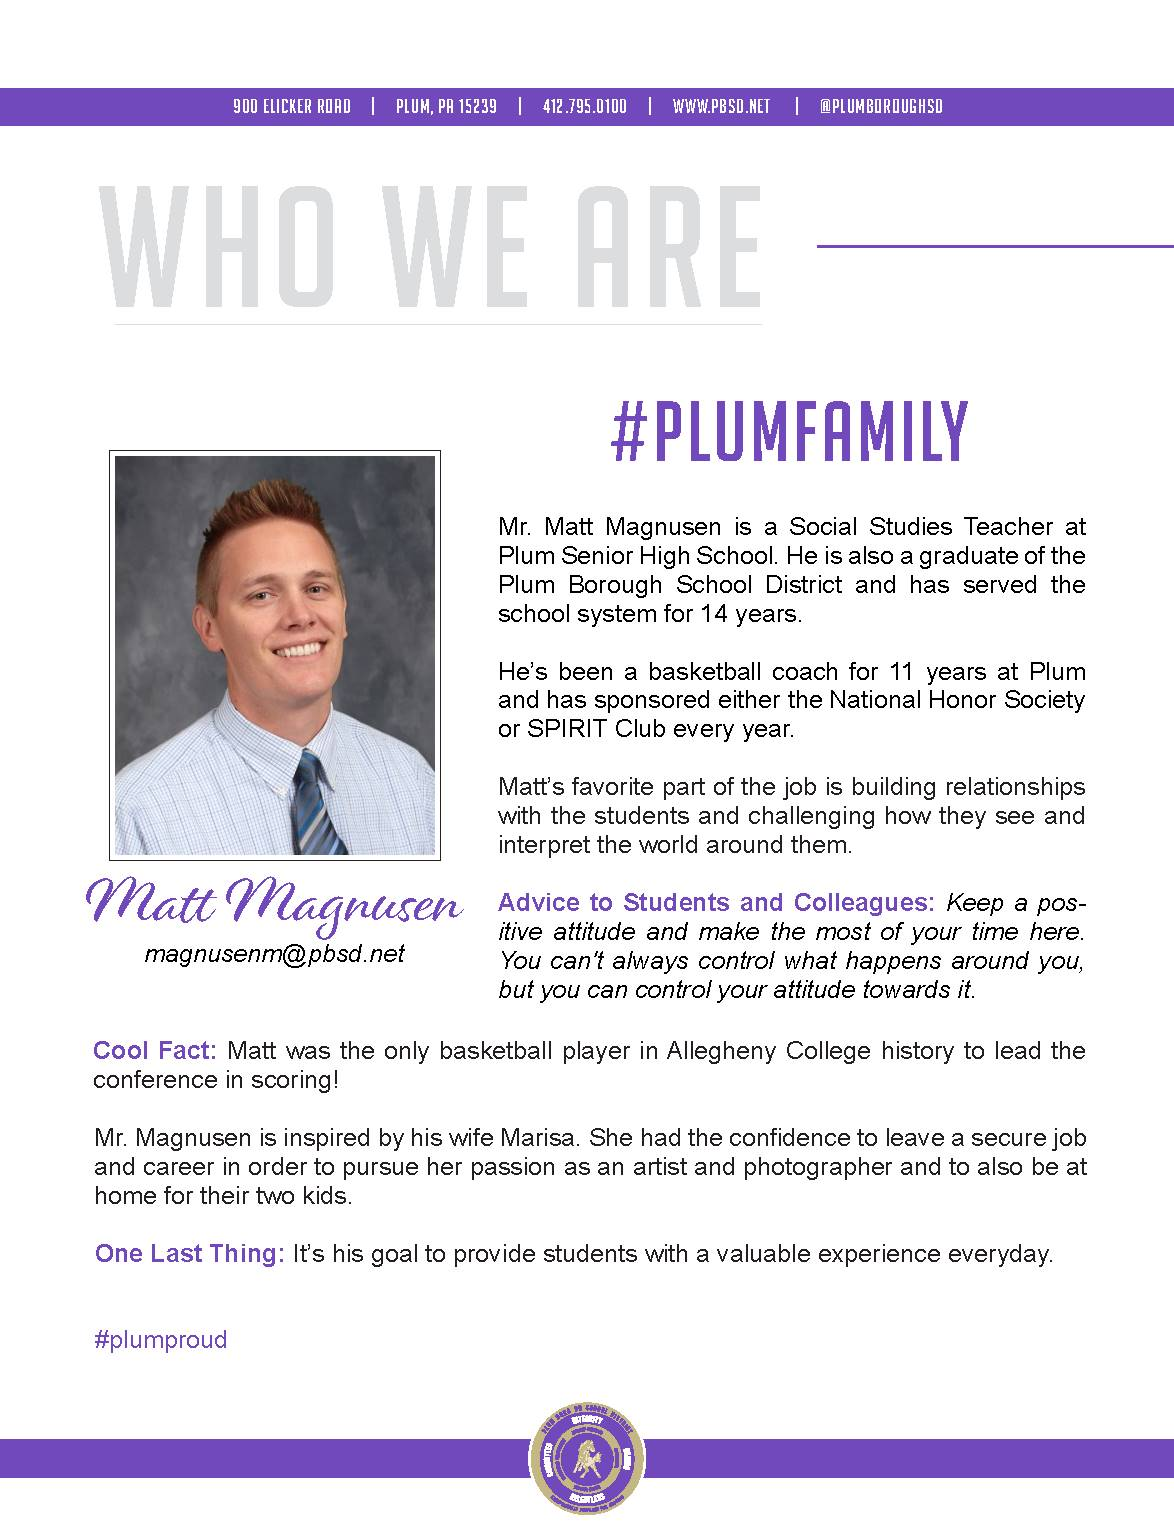 Who We Are Wednesday features Matt Magnusen.